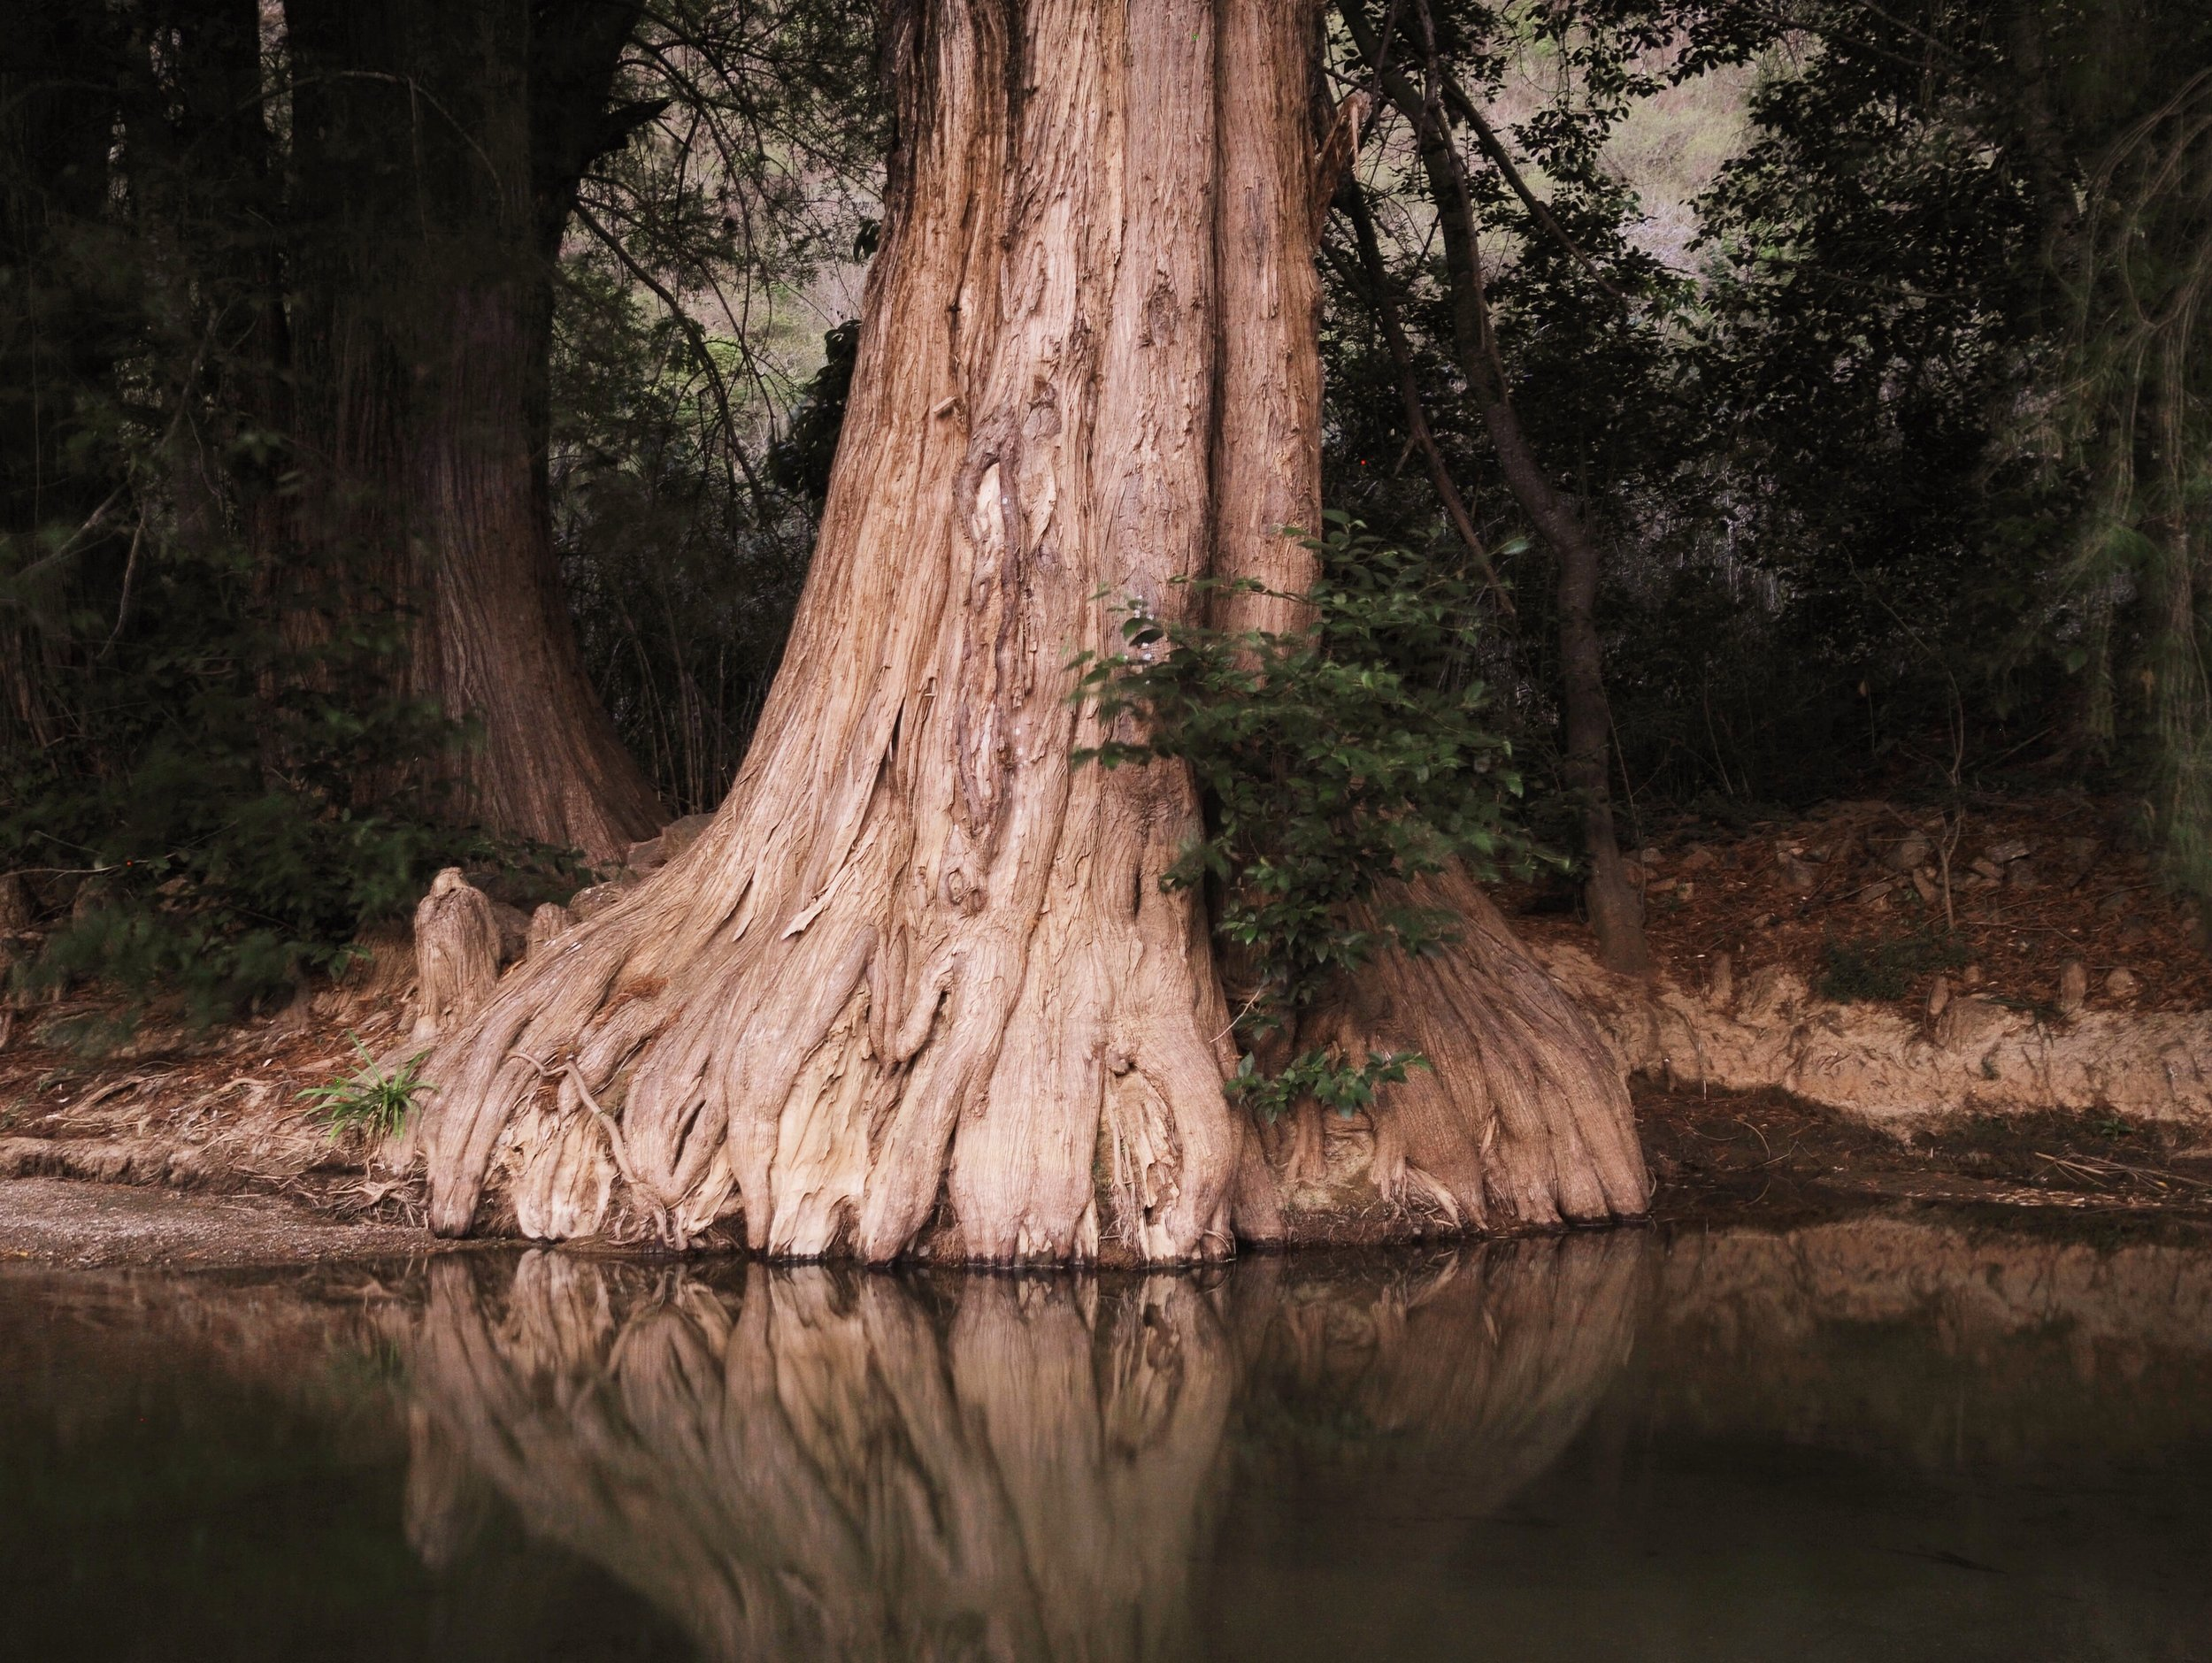 The cypress trees provided shade as we enjoyed the refreshing river water